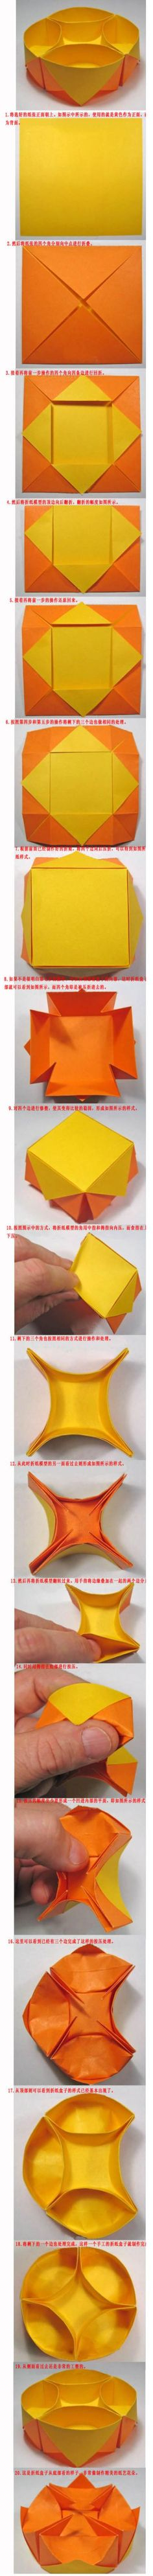 "written directions for this origami ""snack"" bowl, but it's pretty easy to figure out. Use at least a sheet of 8 X 11 inch paper Diy Origami, Origami And Kirigami, Paper Crafts Origami, Origami Tutorial, Diy Paper, Oragami, Basic Origami, Modular Origami, Origami Frog"